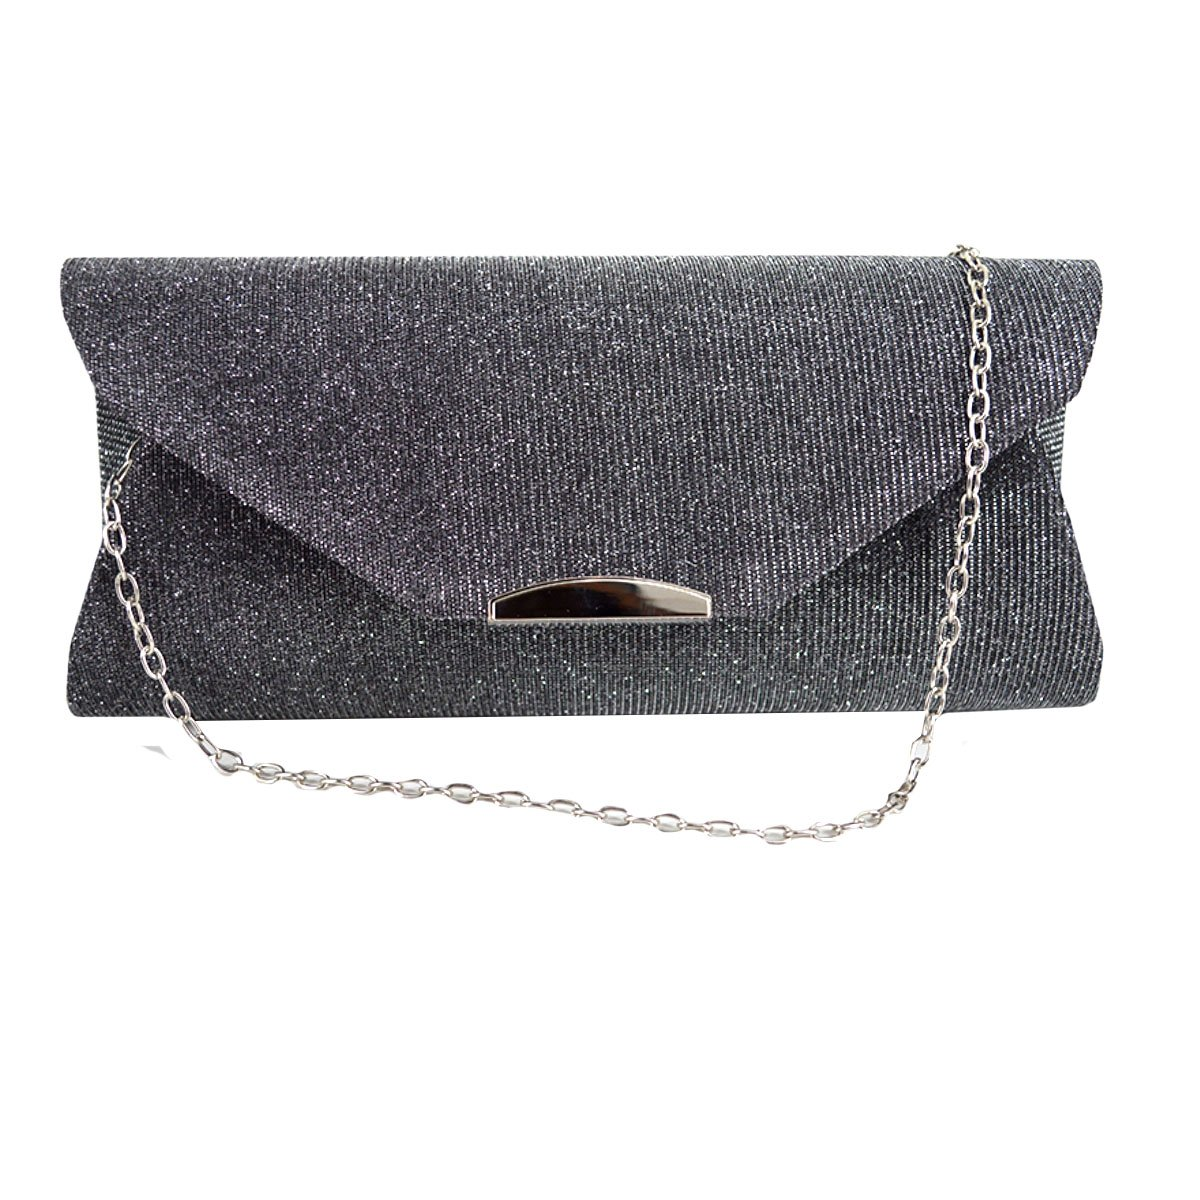 Monique Women Frosted Leather Evening Bag Clutch Bag Mini Envelope Bag Cross body Bag with Chain Strap Money Purse 2384 Dark grey